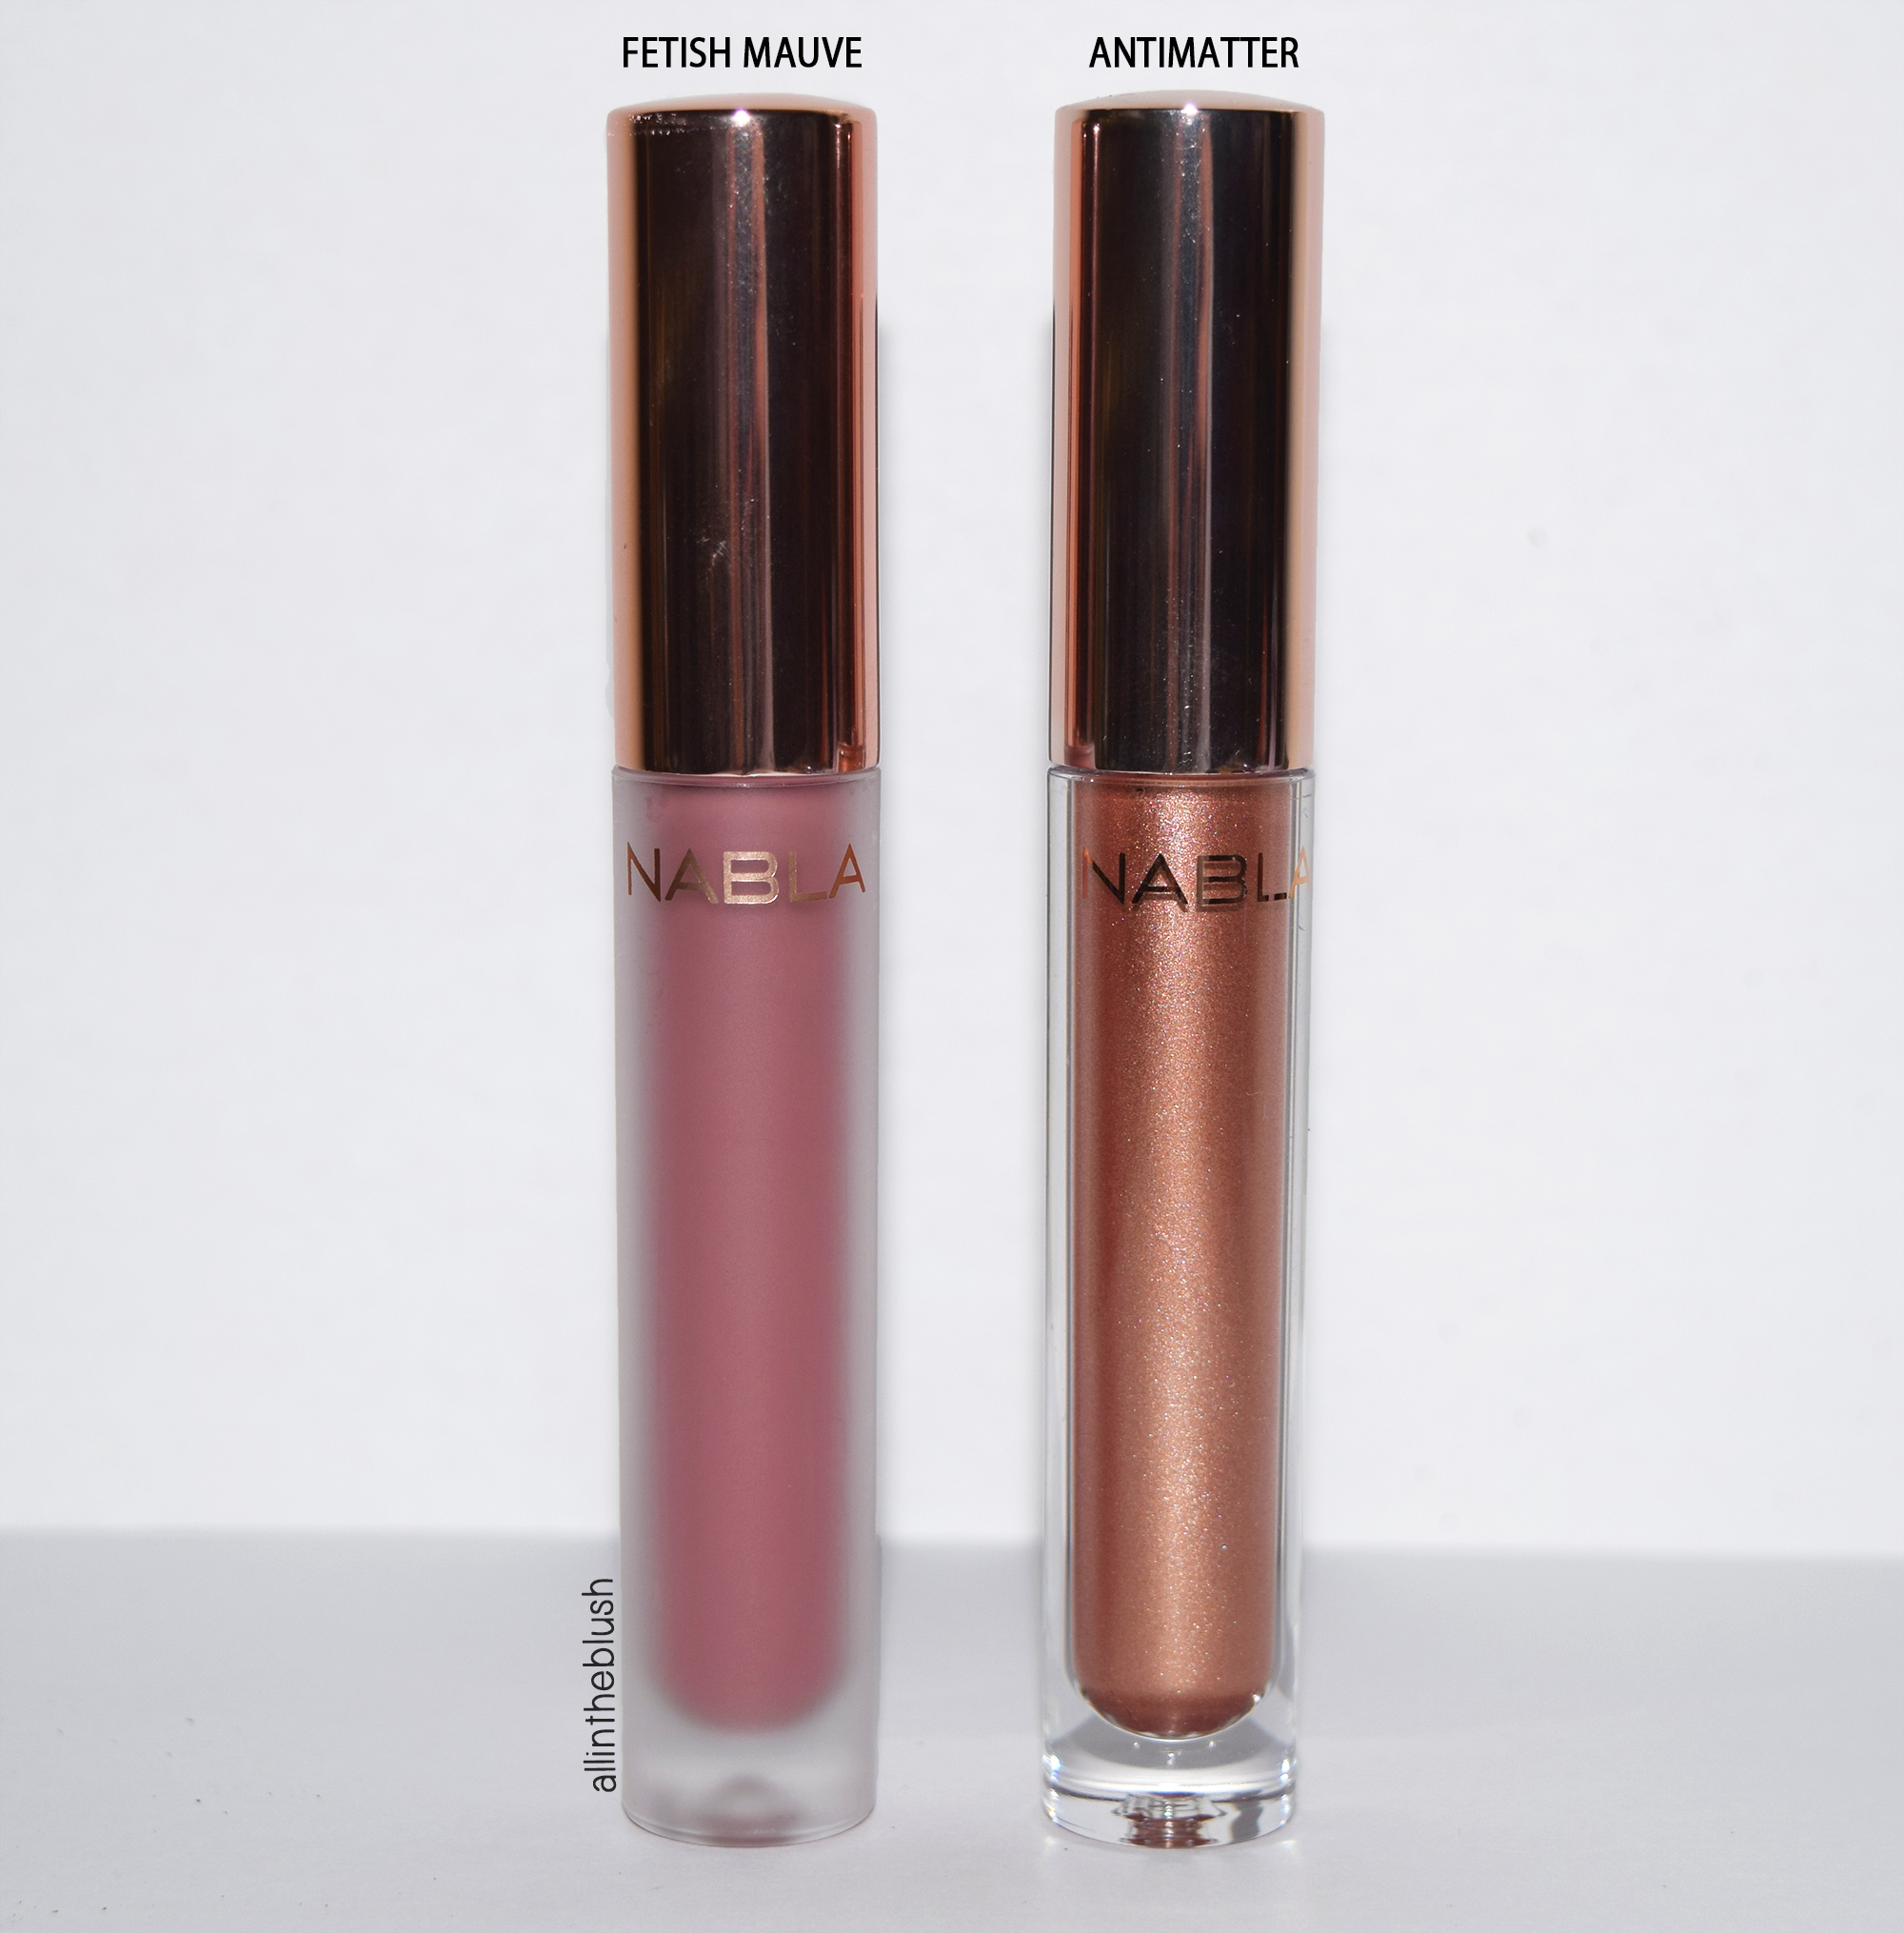 Nabla Freedomination Liquid Matte Dreamy Lipsticks